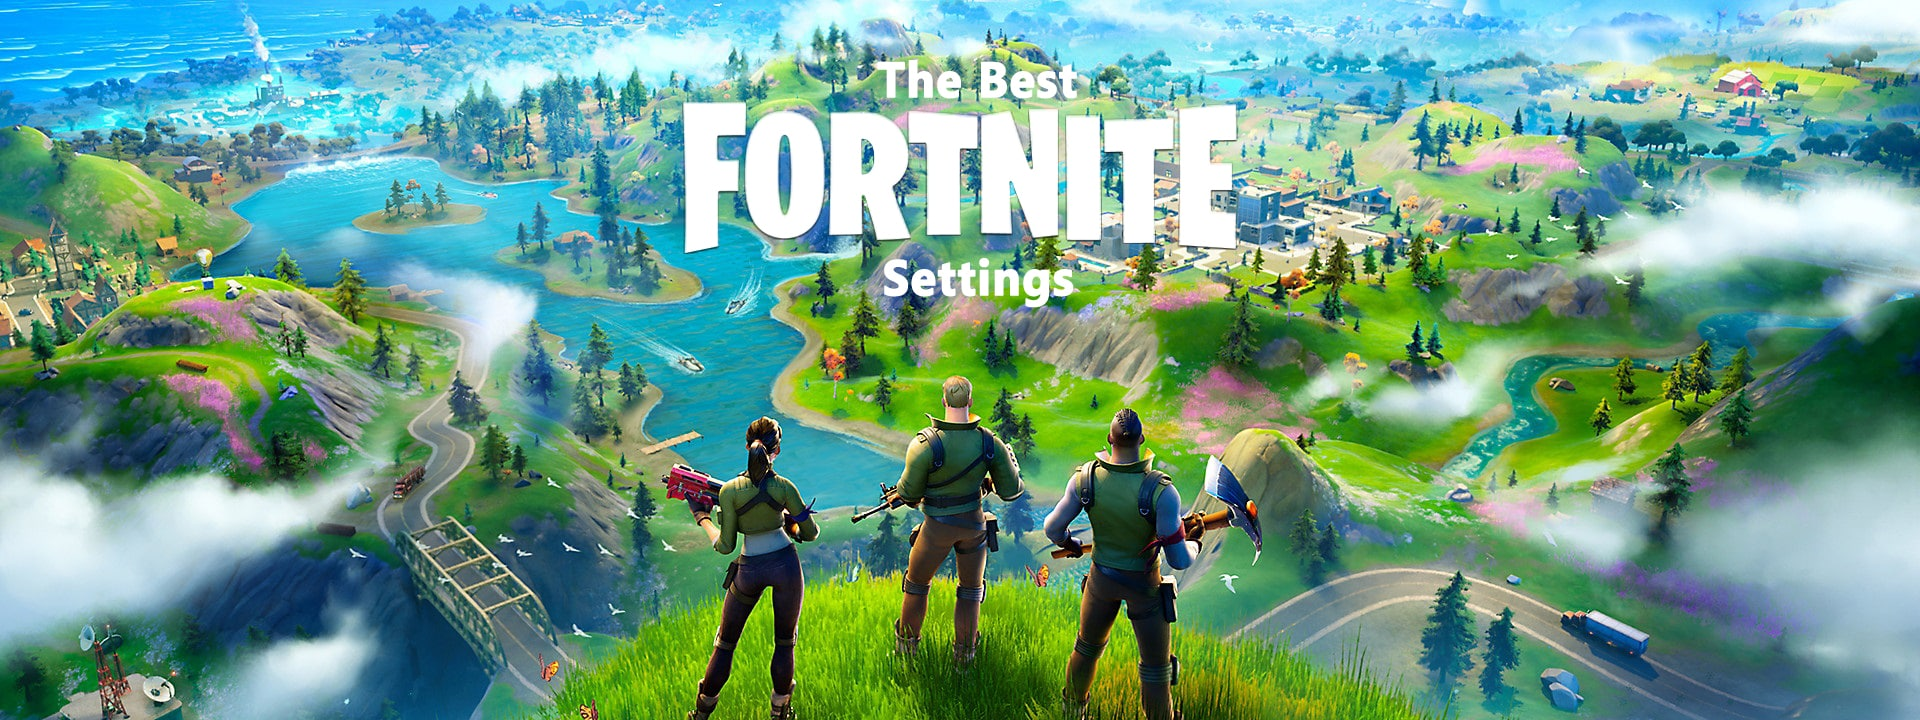 Best Fortnite Settings: A Cross-Platform Guide for Competitive Play